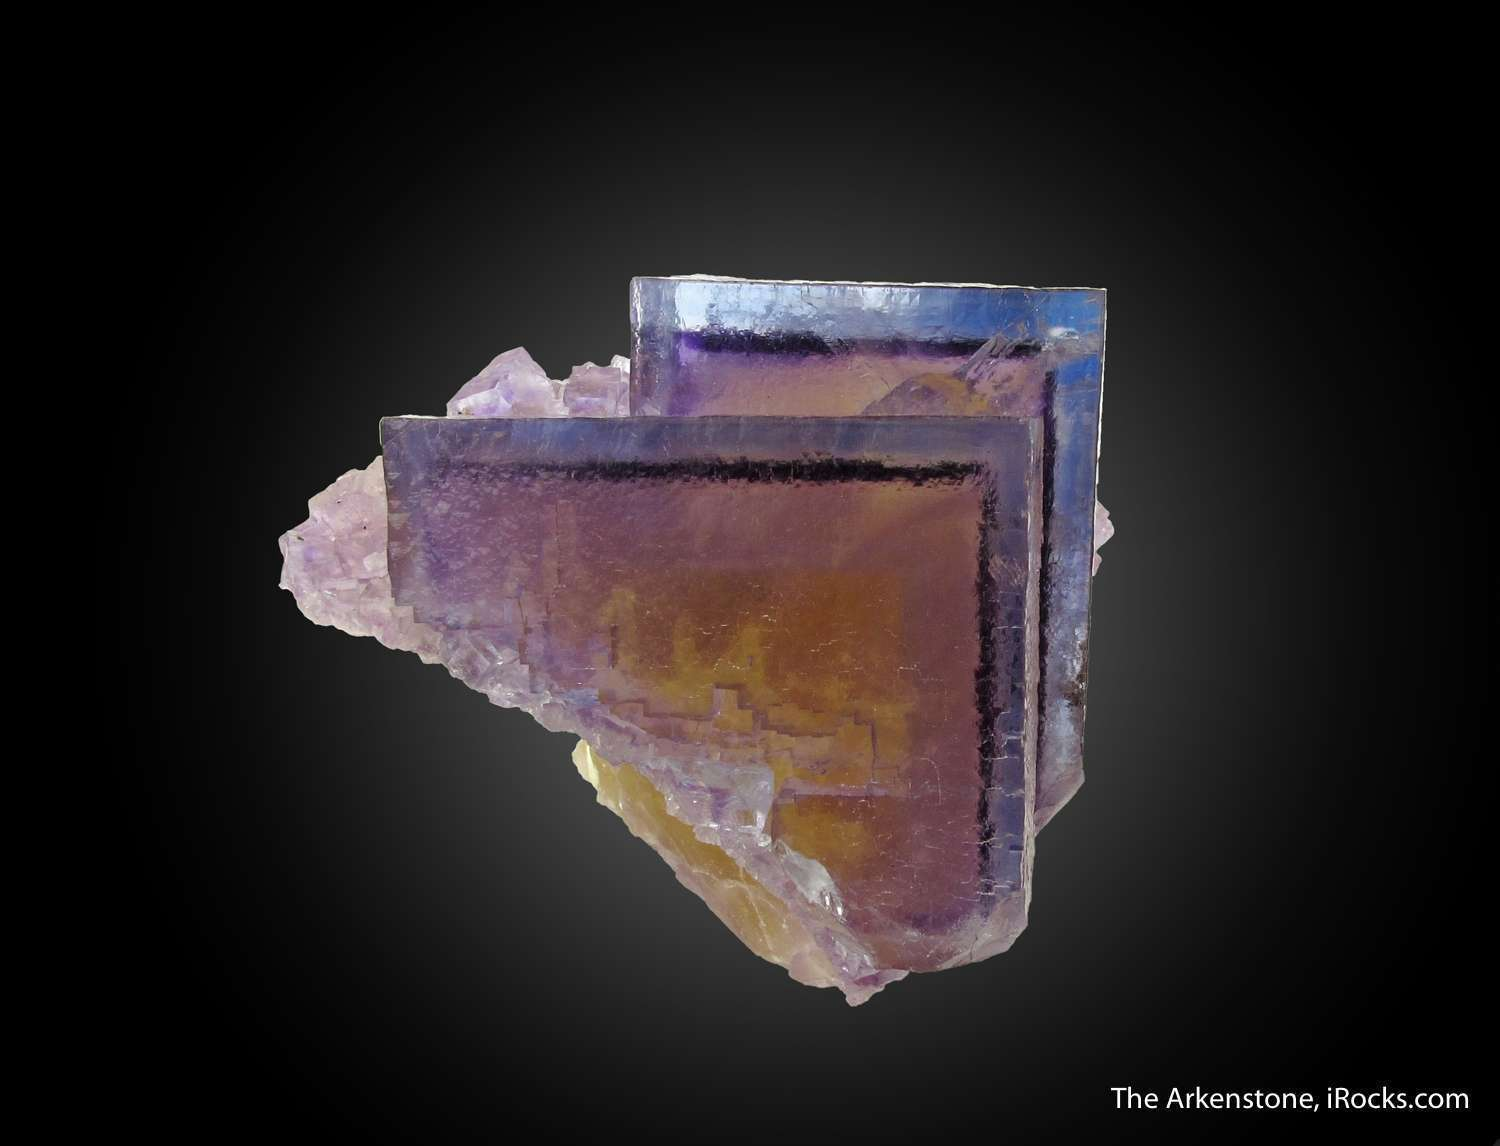 Stunning classic Minerva beauty zoned Fluorite simply speaks The small